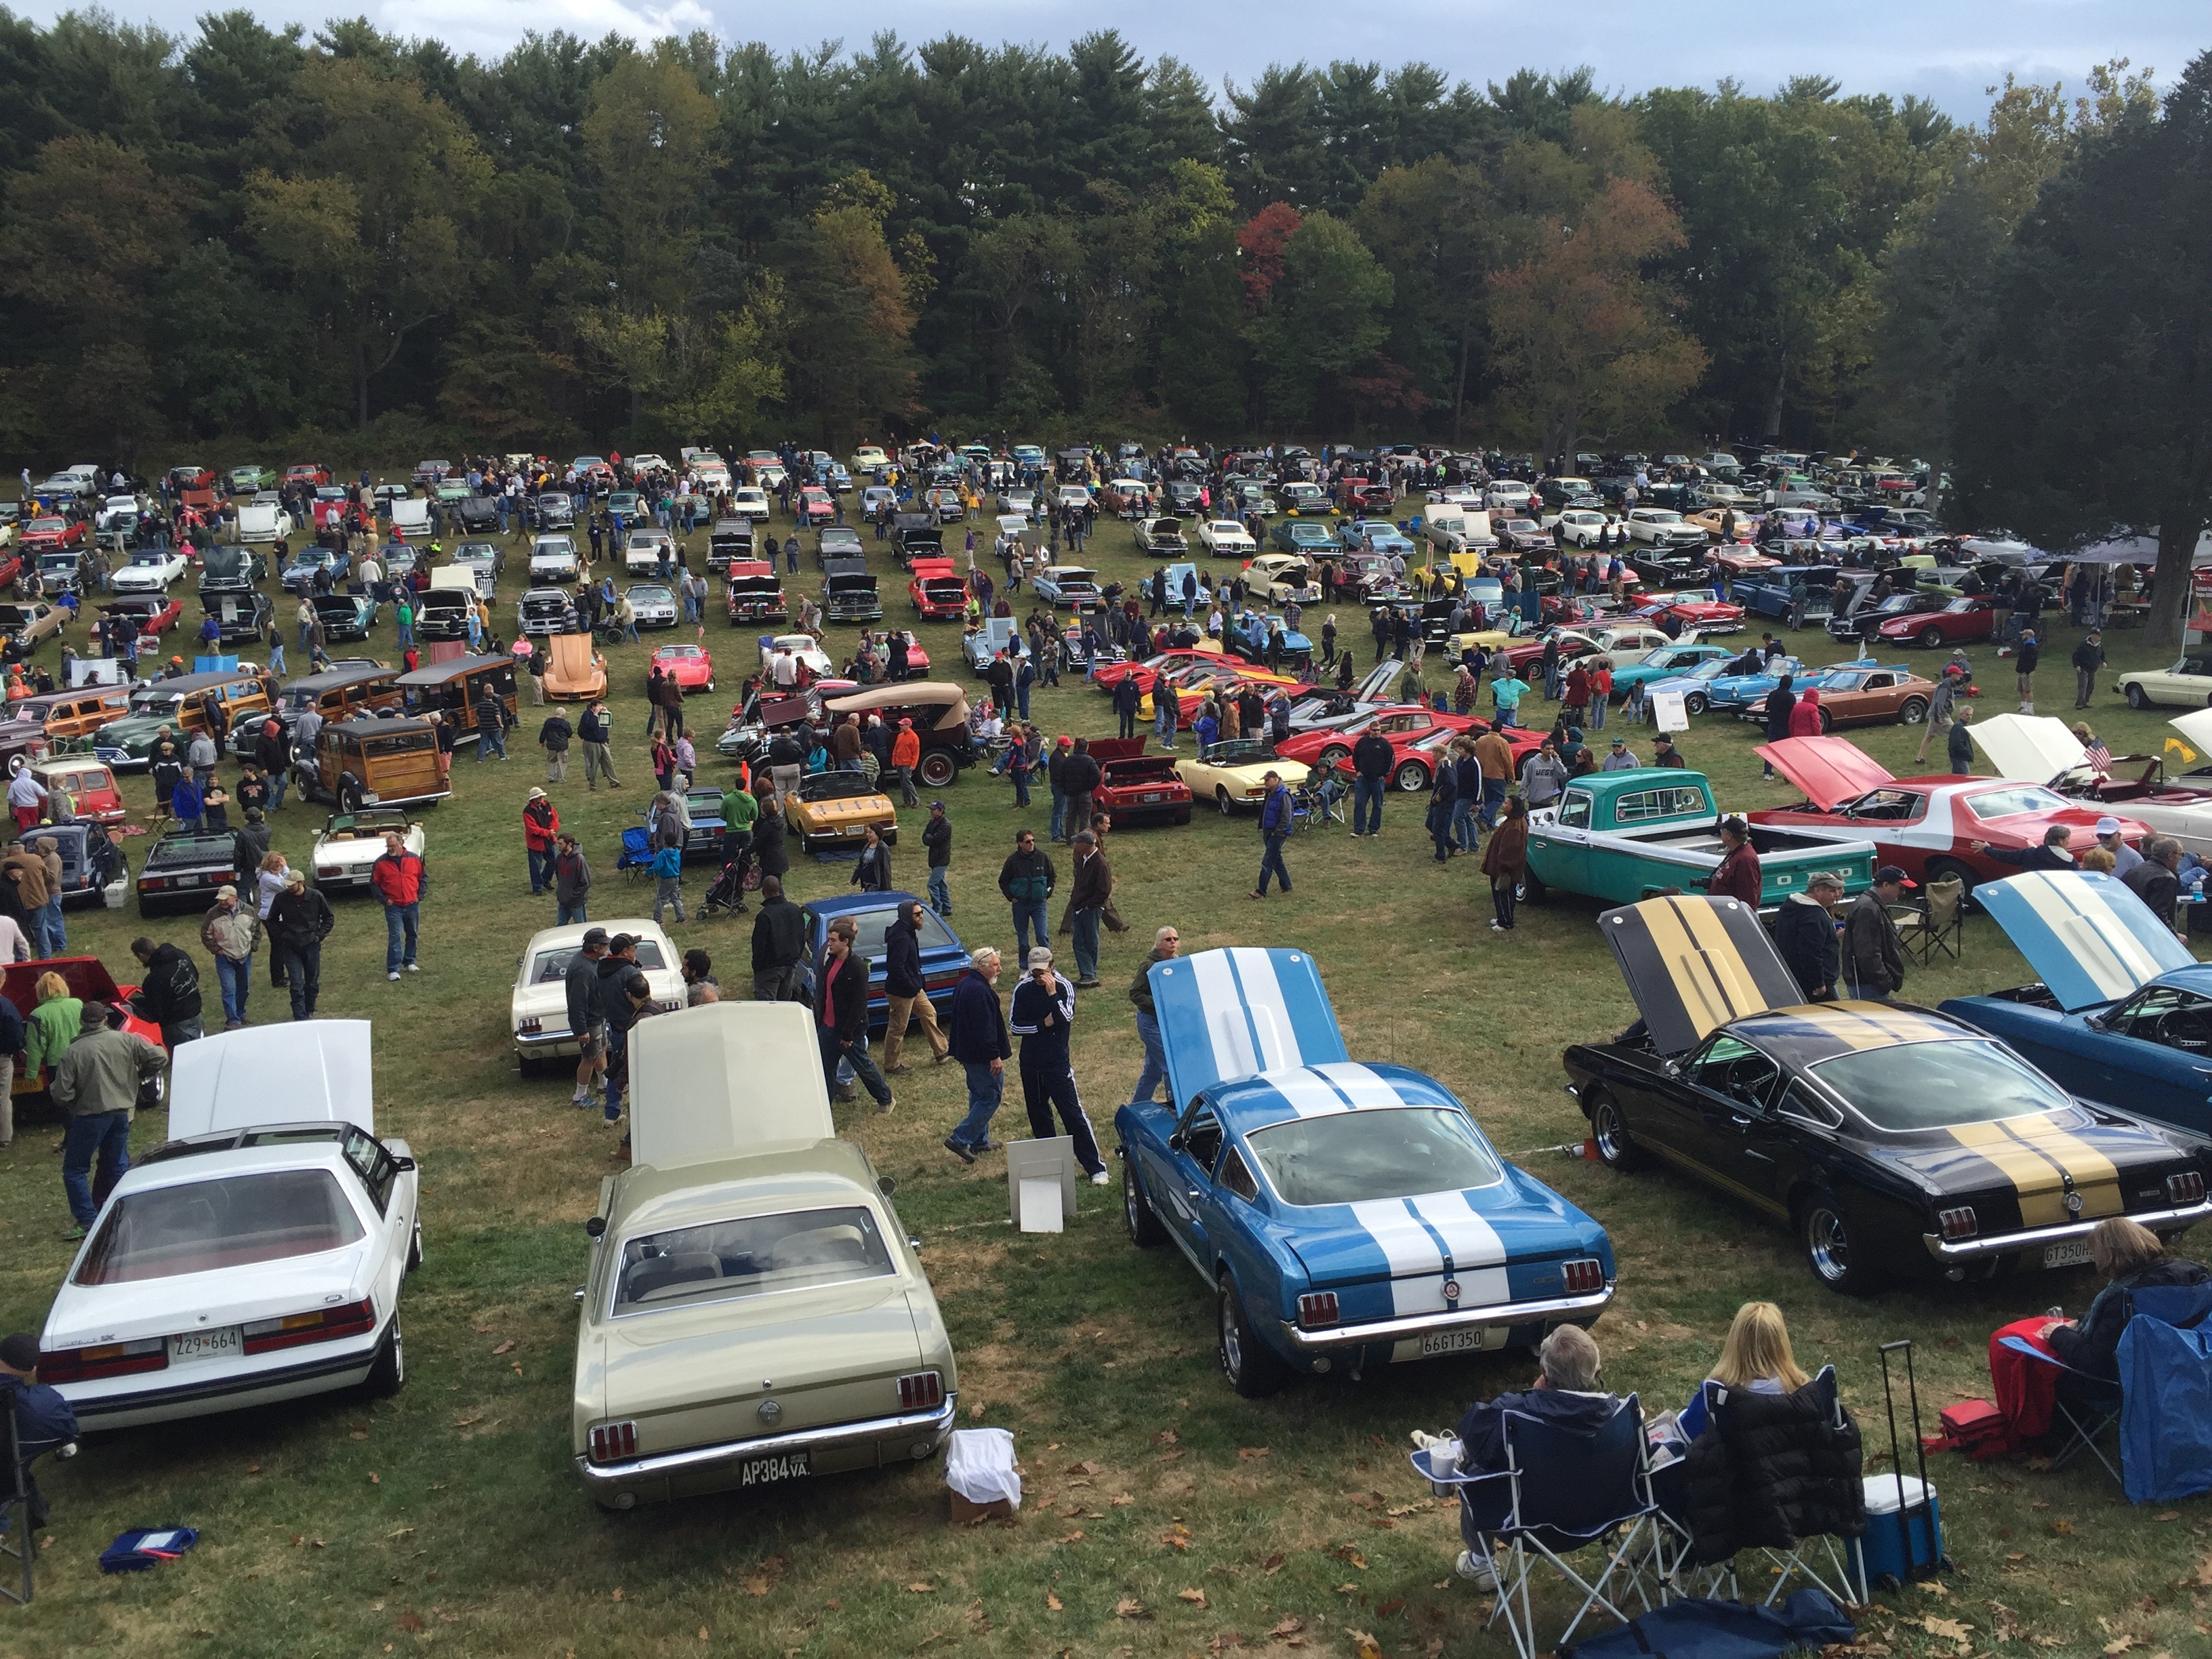 FileRockville Antique And Classic Car Show In Maryland Of - Antique and classic car show